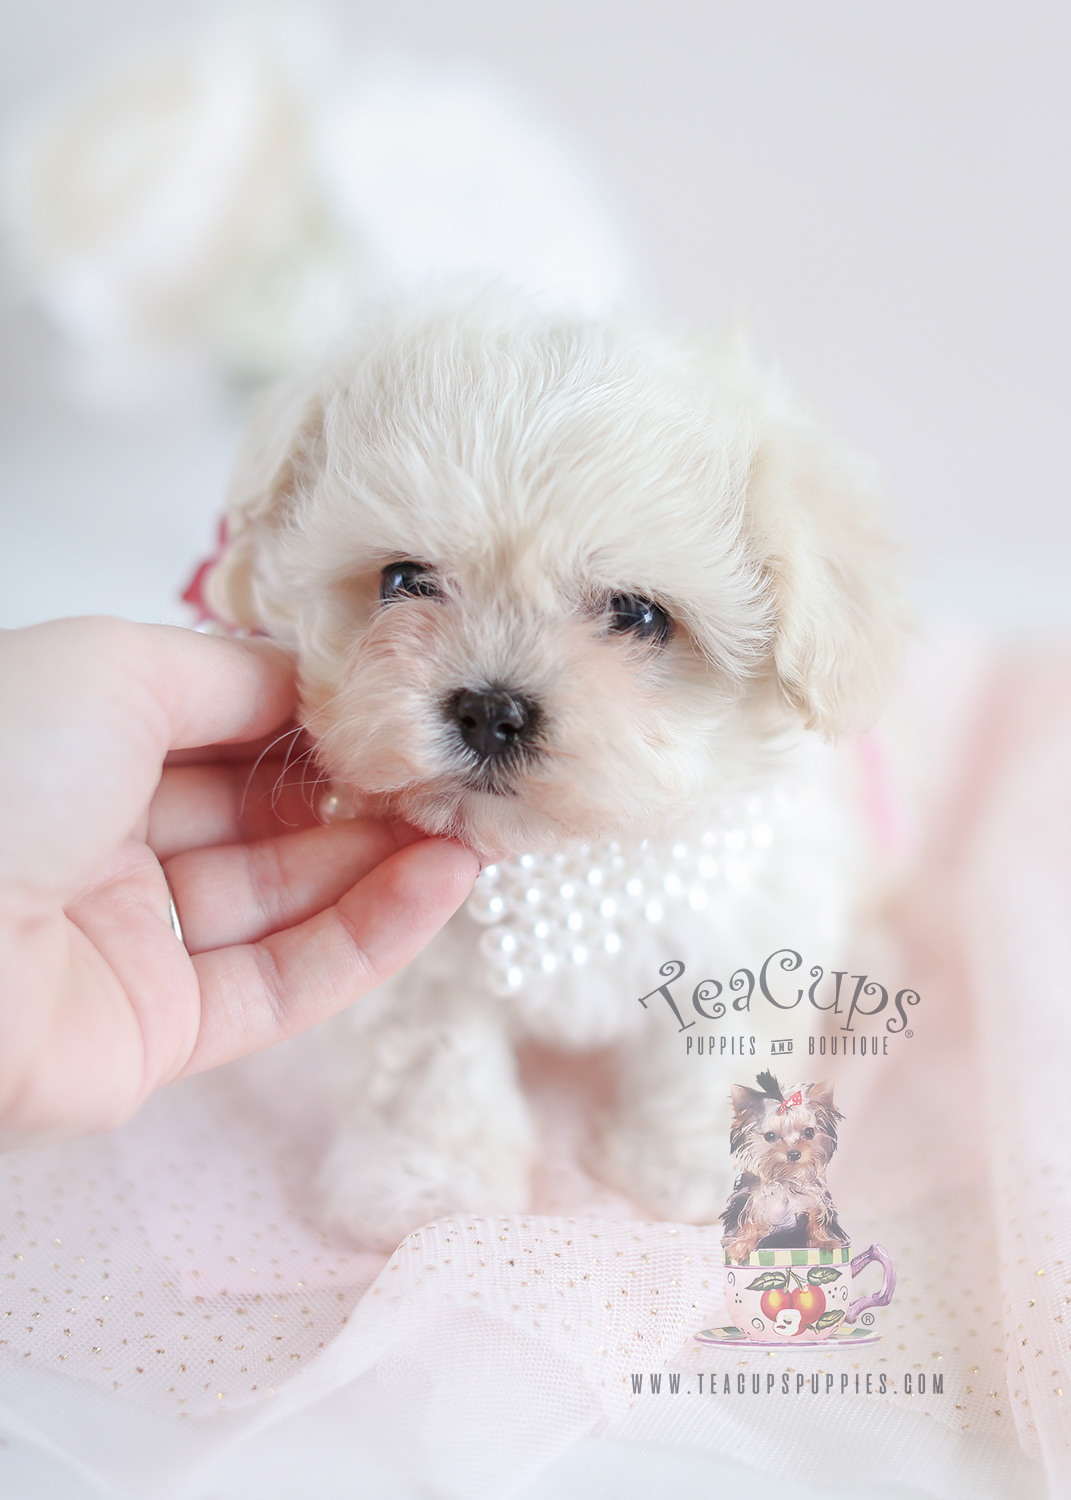 Teacup Puppies Maltipoo Puppy For Sale #050